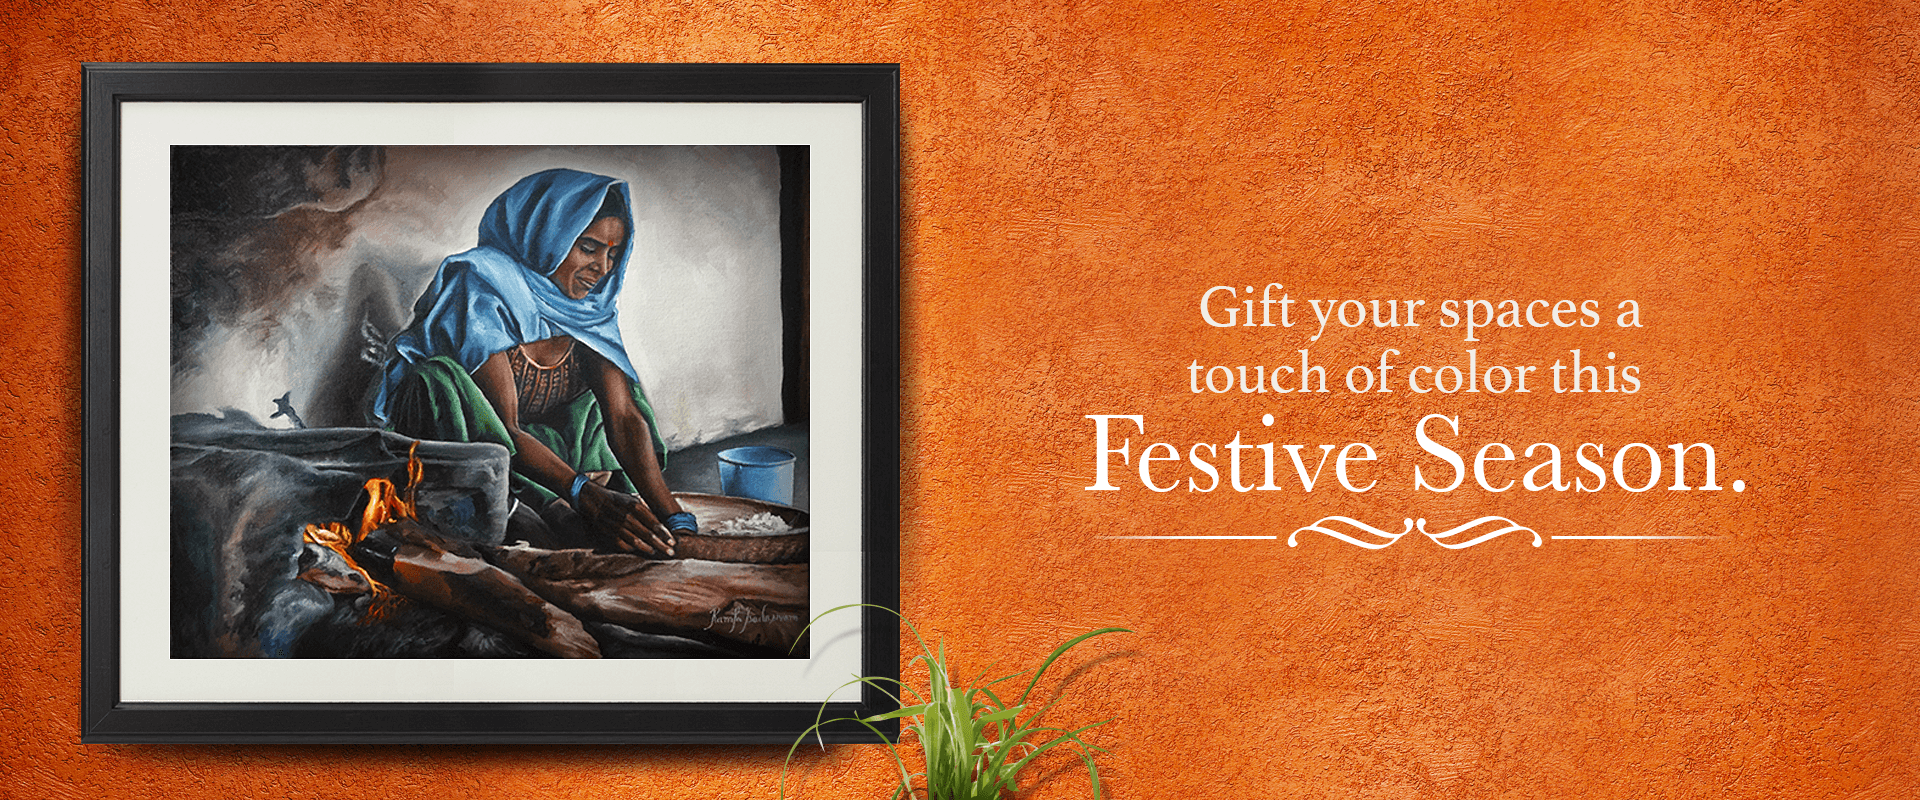 How 'Artistic Paintings' can bring uniqueness to the sentiments of gifting this festive season?